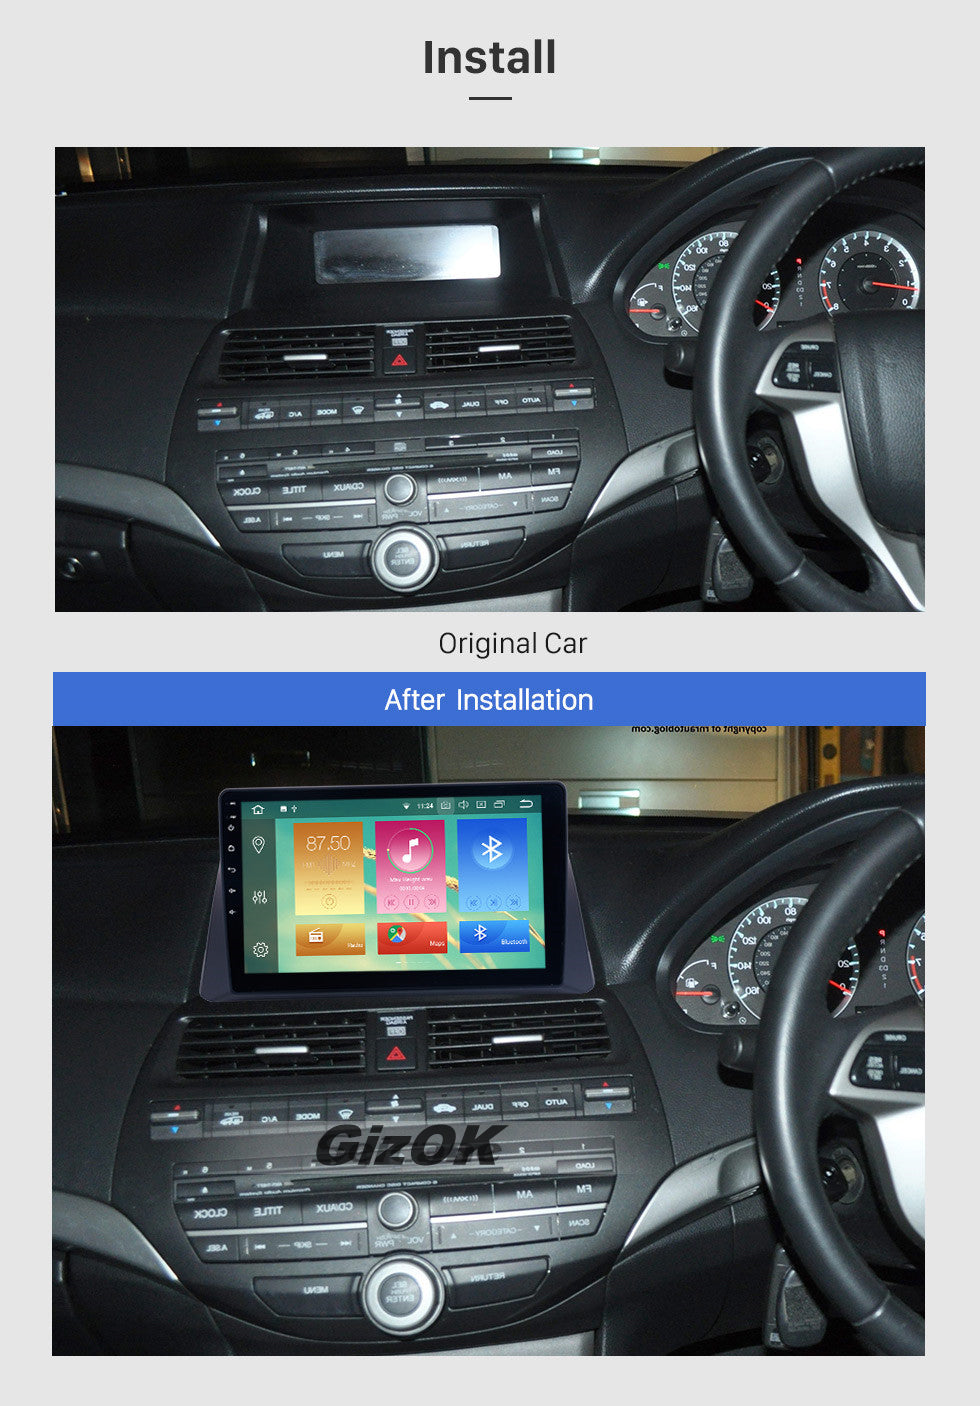 2008-2012 HONDA ACCORD 8 4G WIFI Car GPS Navigation System